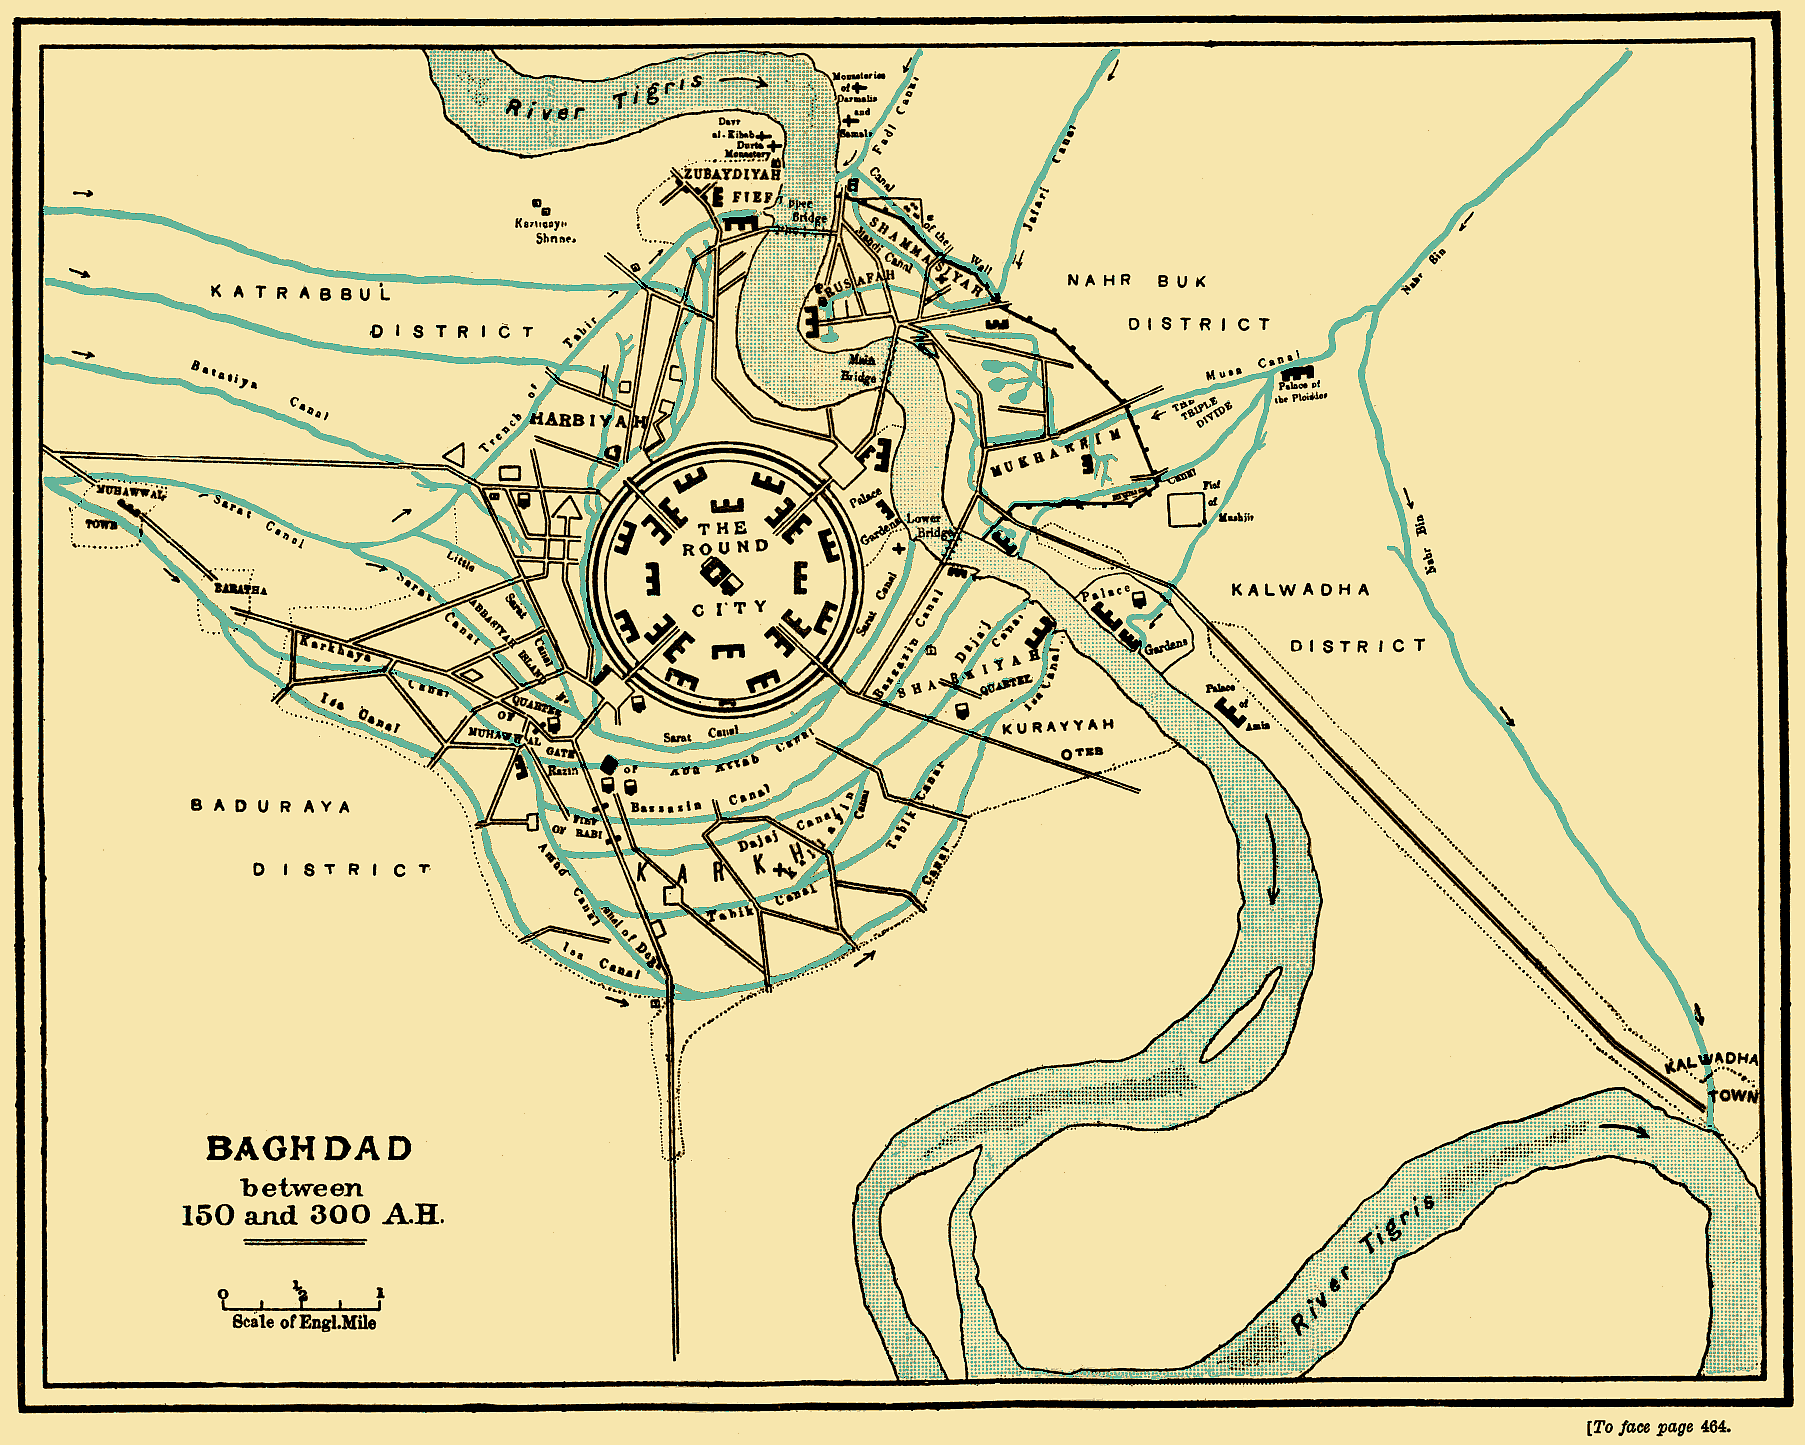 Baghdad between 767 and 912